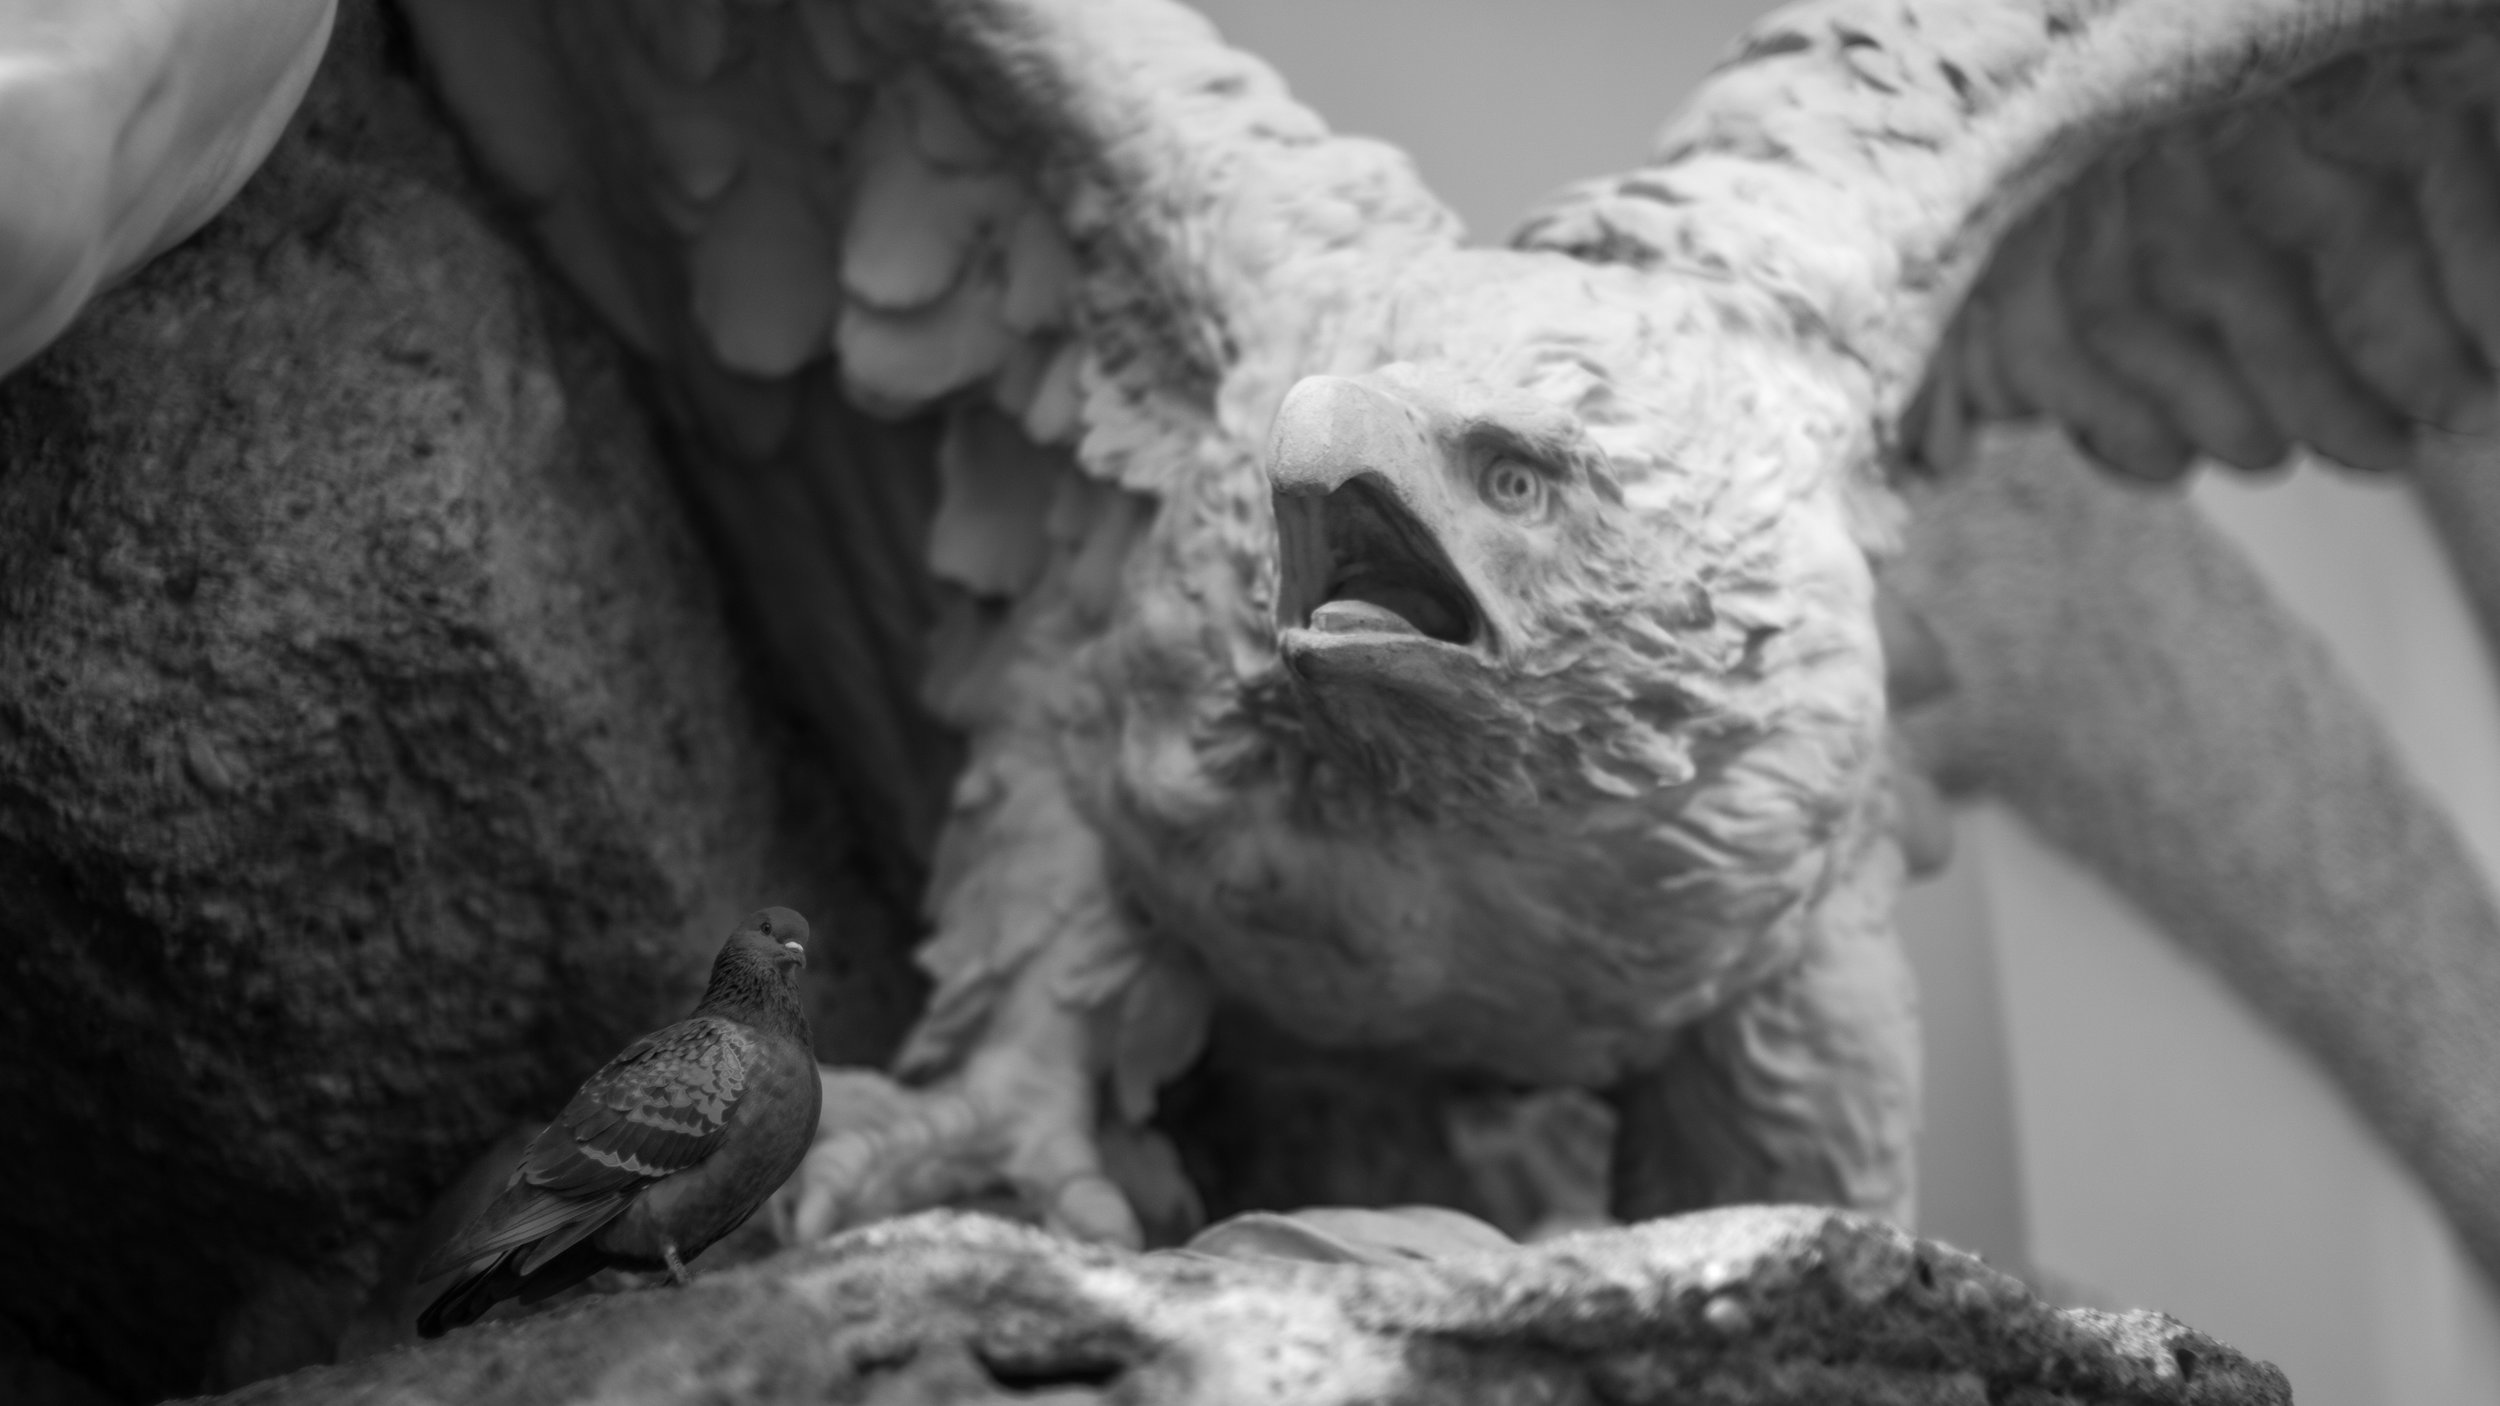 I think this is one of the most ironic images I've ever made. This is some fountain in Austria, and this pigeon was just chilling at the feet of the eagle / hawk thing in the statue. The expressions are priceless.